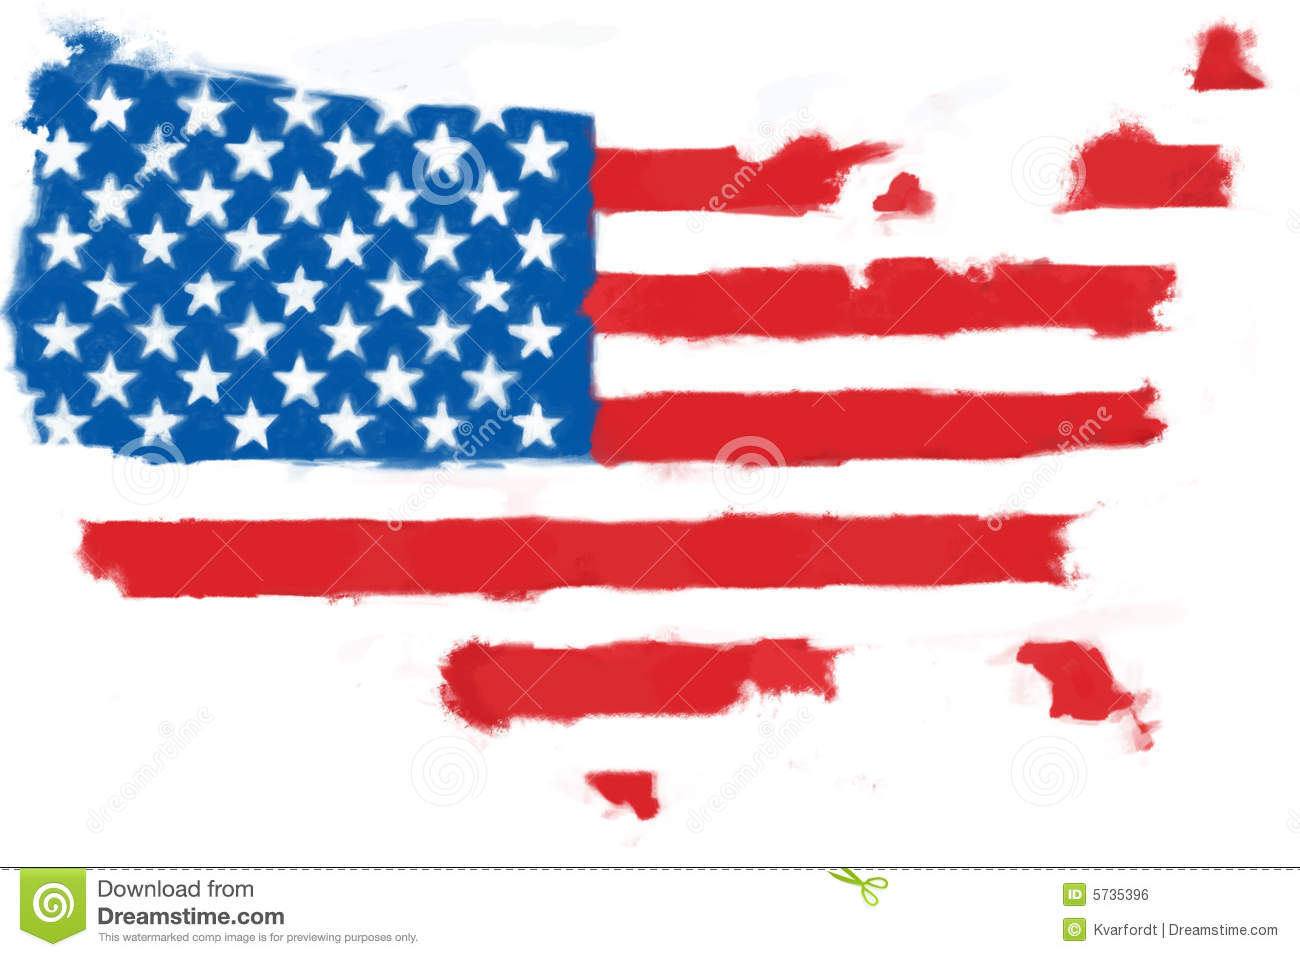 usa map vector with E5 85 8d E7 89 88 E7 A8 8e E5 Ba 93 E5 Ad 98 E5 9b Be E7 89 87  E7 Be 8e E5 9b Bd E5 9b Bd E6 97 97 Image5735396 on Stockfoto Blaue Aquarell Wel arte Image46731026 moreover World Travel Map Vector Illustration 555186352 further Royalty Free Stock Photo Soda Beverage Store Shelves Beverages Supermarket Usa Image39508765 furthermore Serra De Tramuntana Ed Alpina 25K Waterproof 2 Map Set 9788480905862 furthermore National Flag.